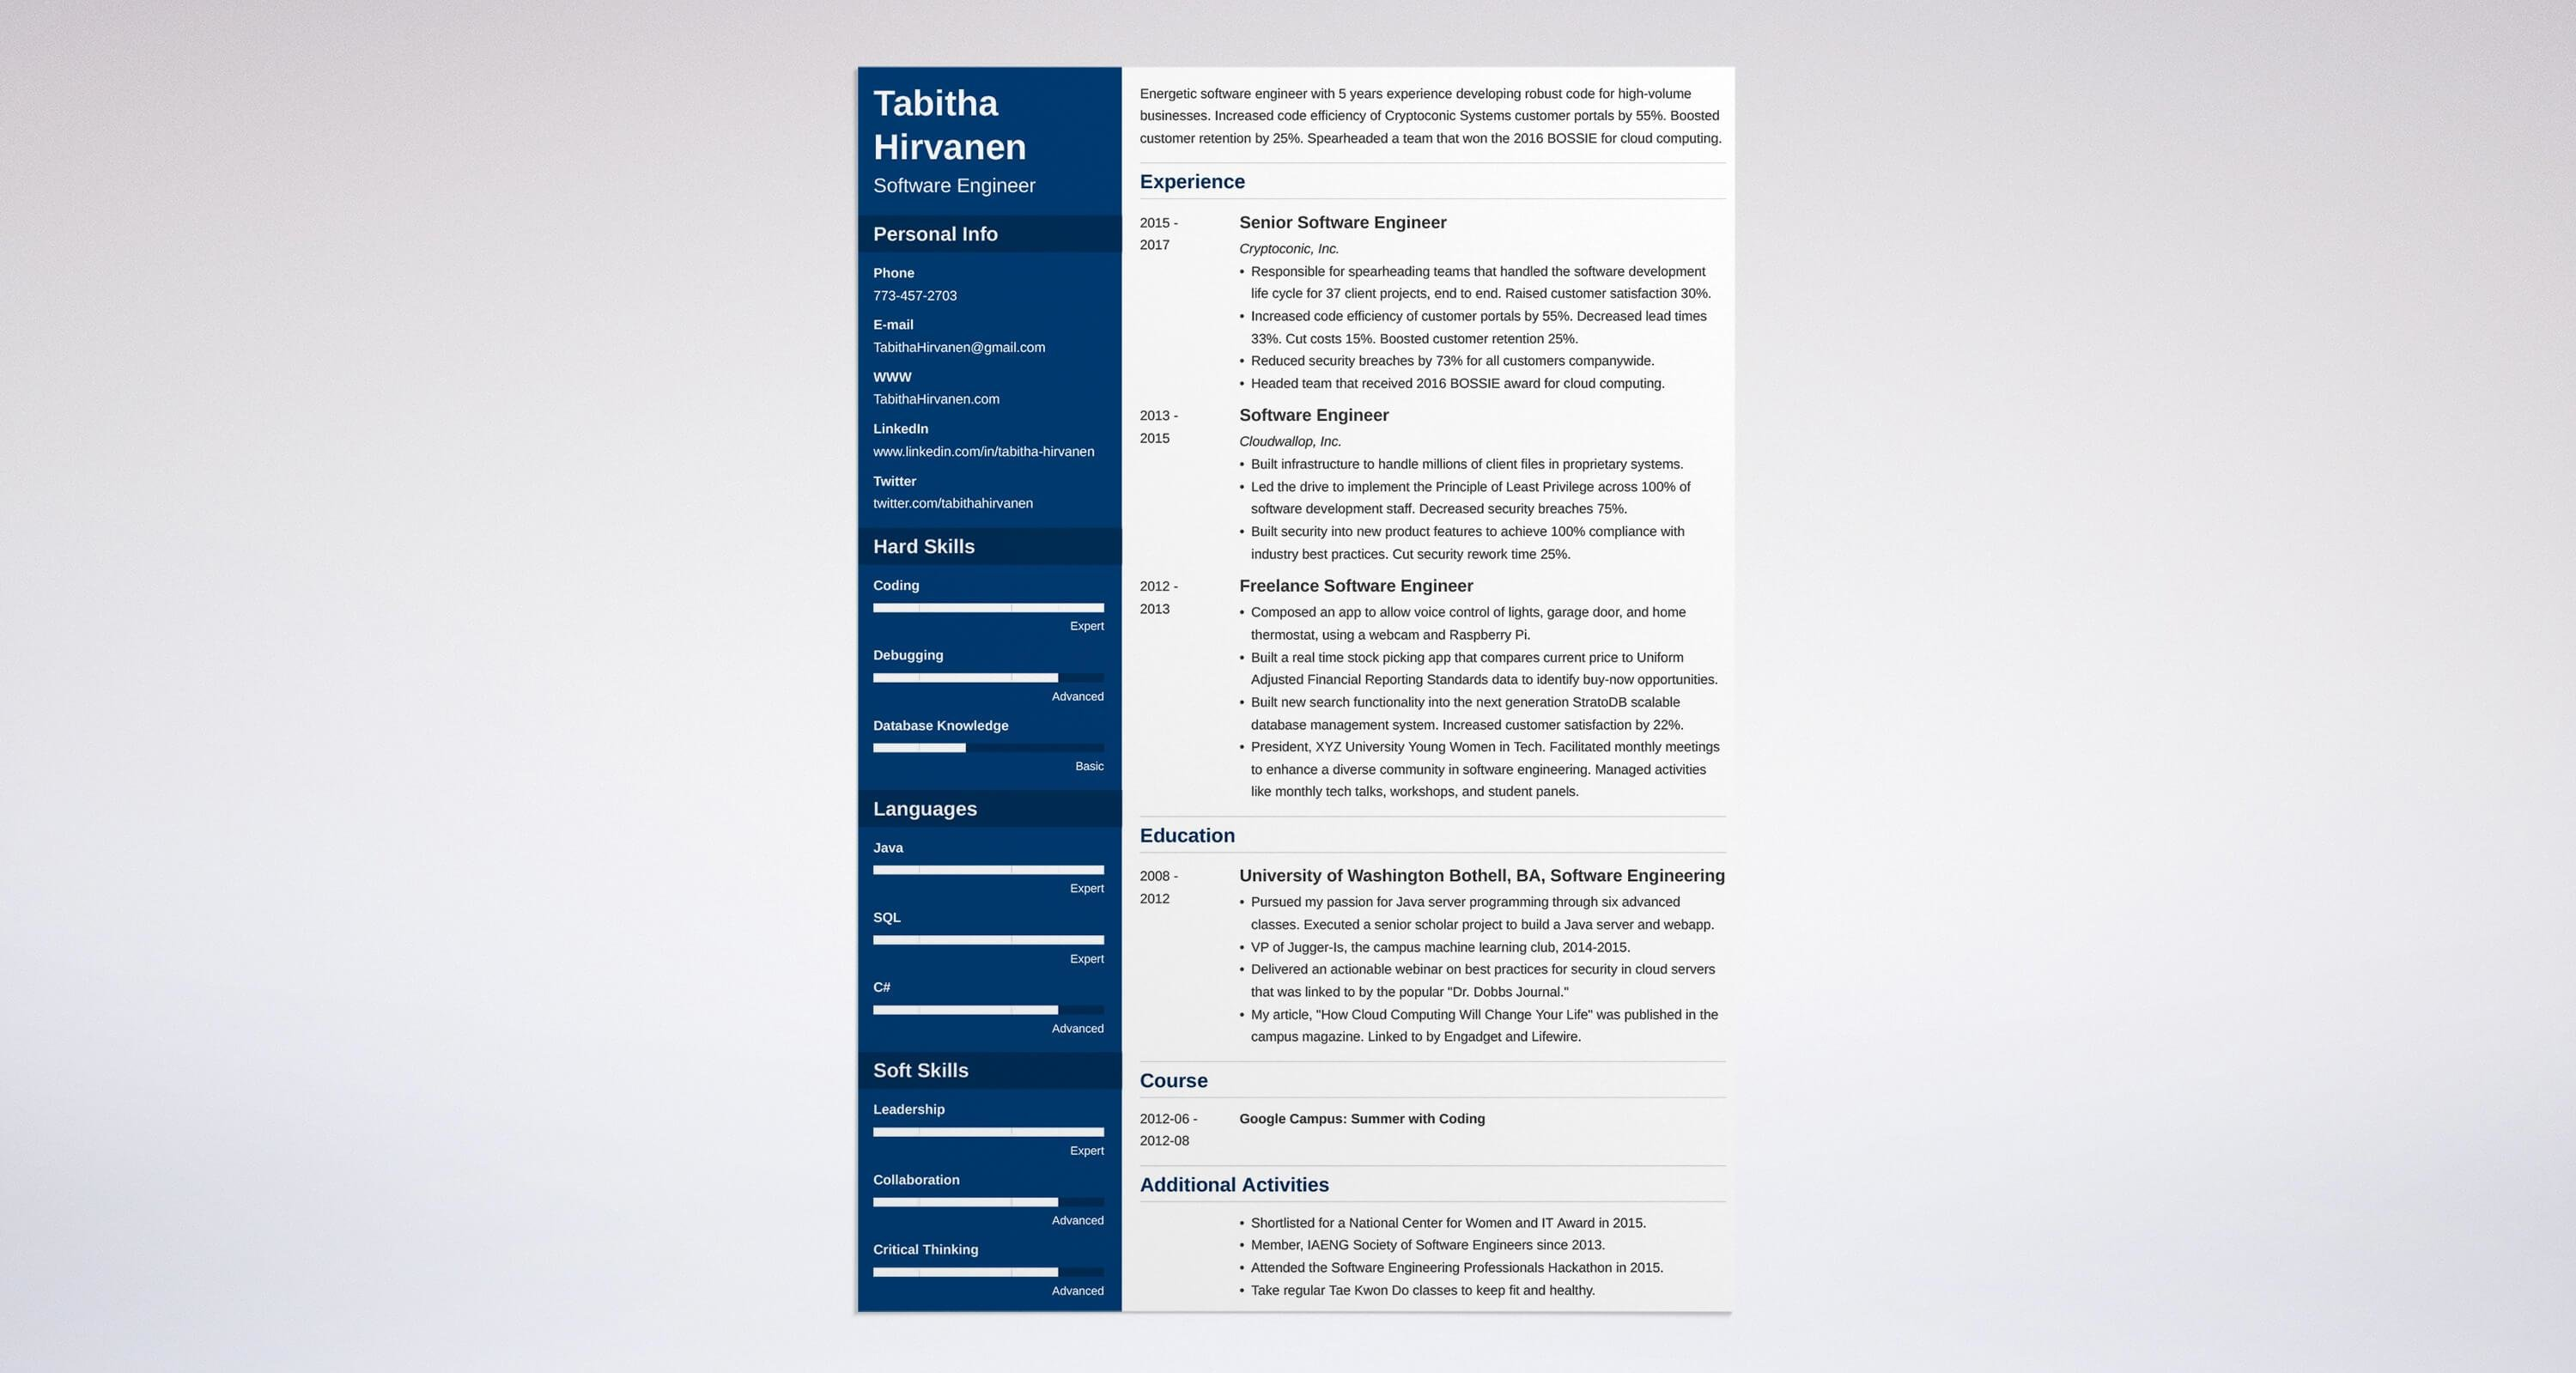 Software Engineer Resume: Guide and a Sample [20+ Examples]